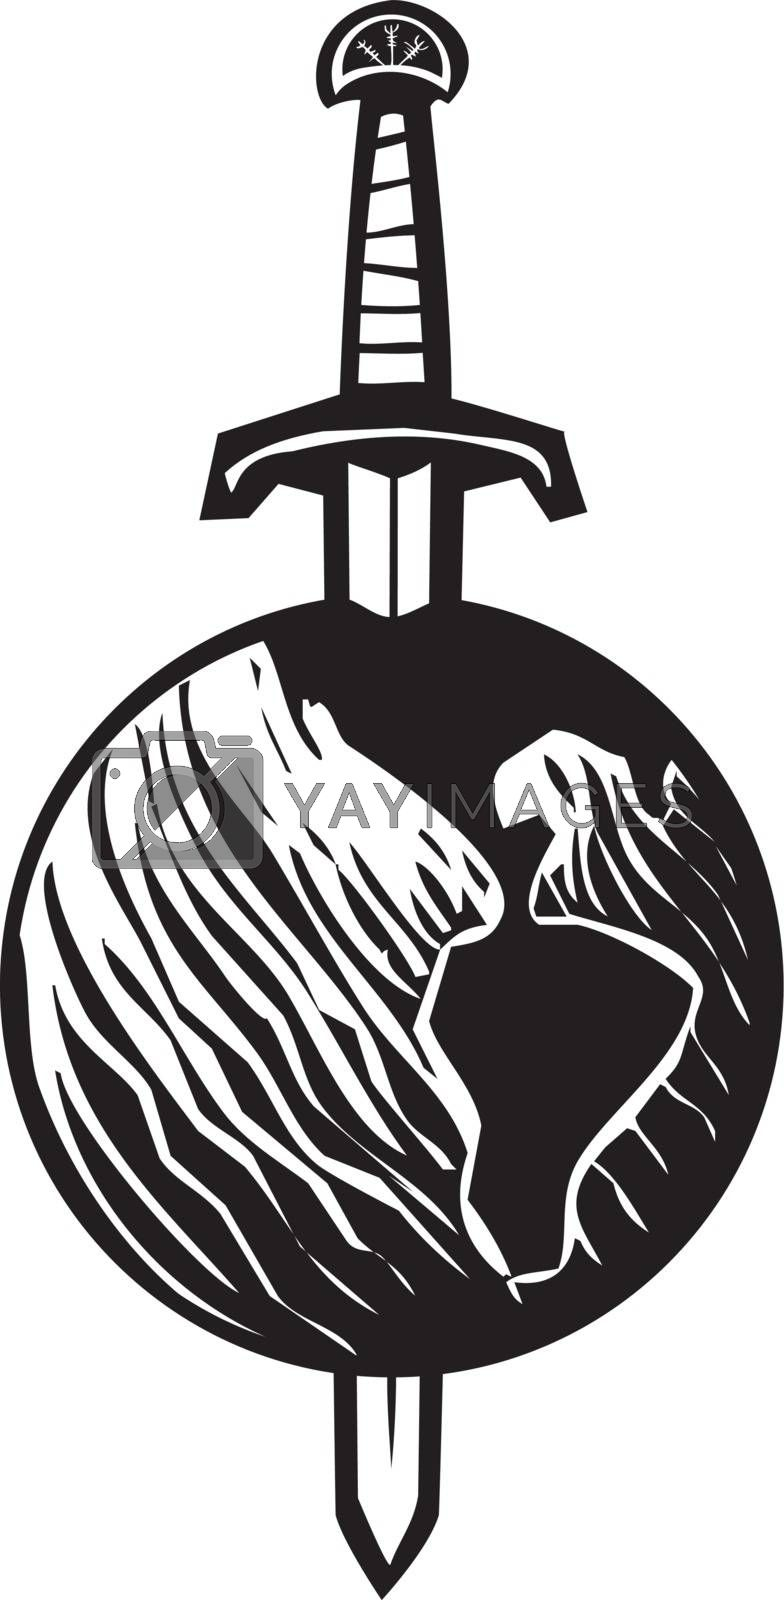 Woodcut image of a sword impaling the earth.